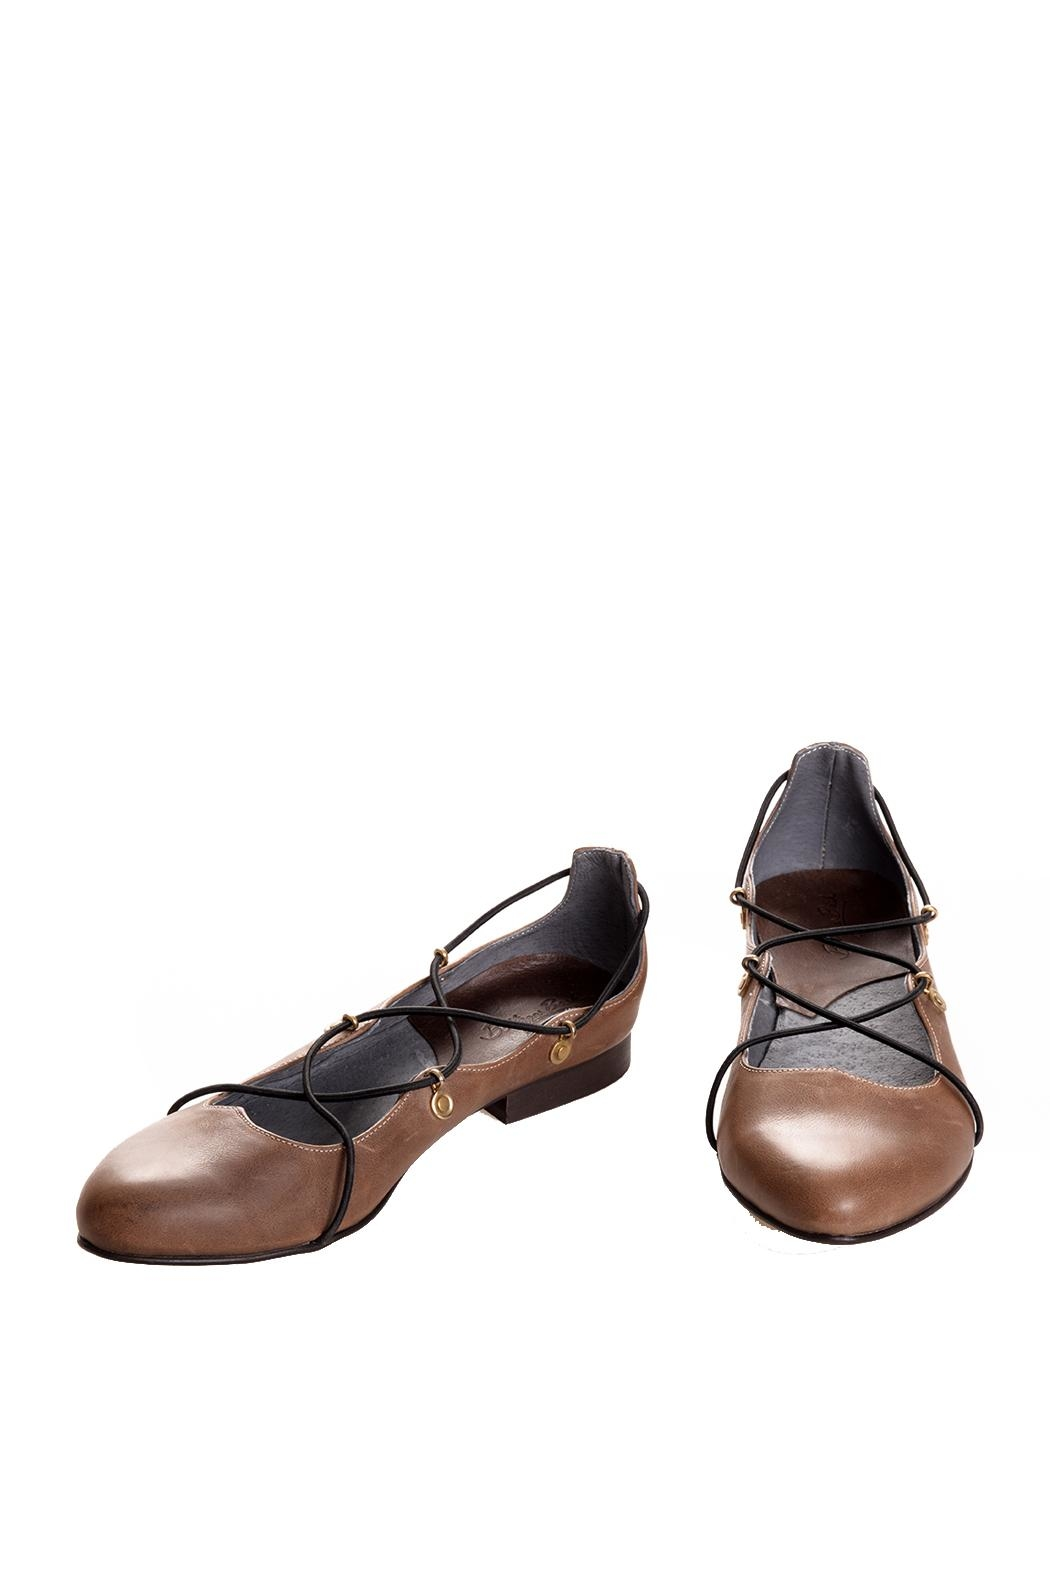 Bottega Bash Brown Leather Loafers - Main Image